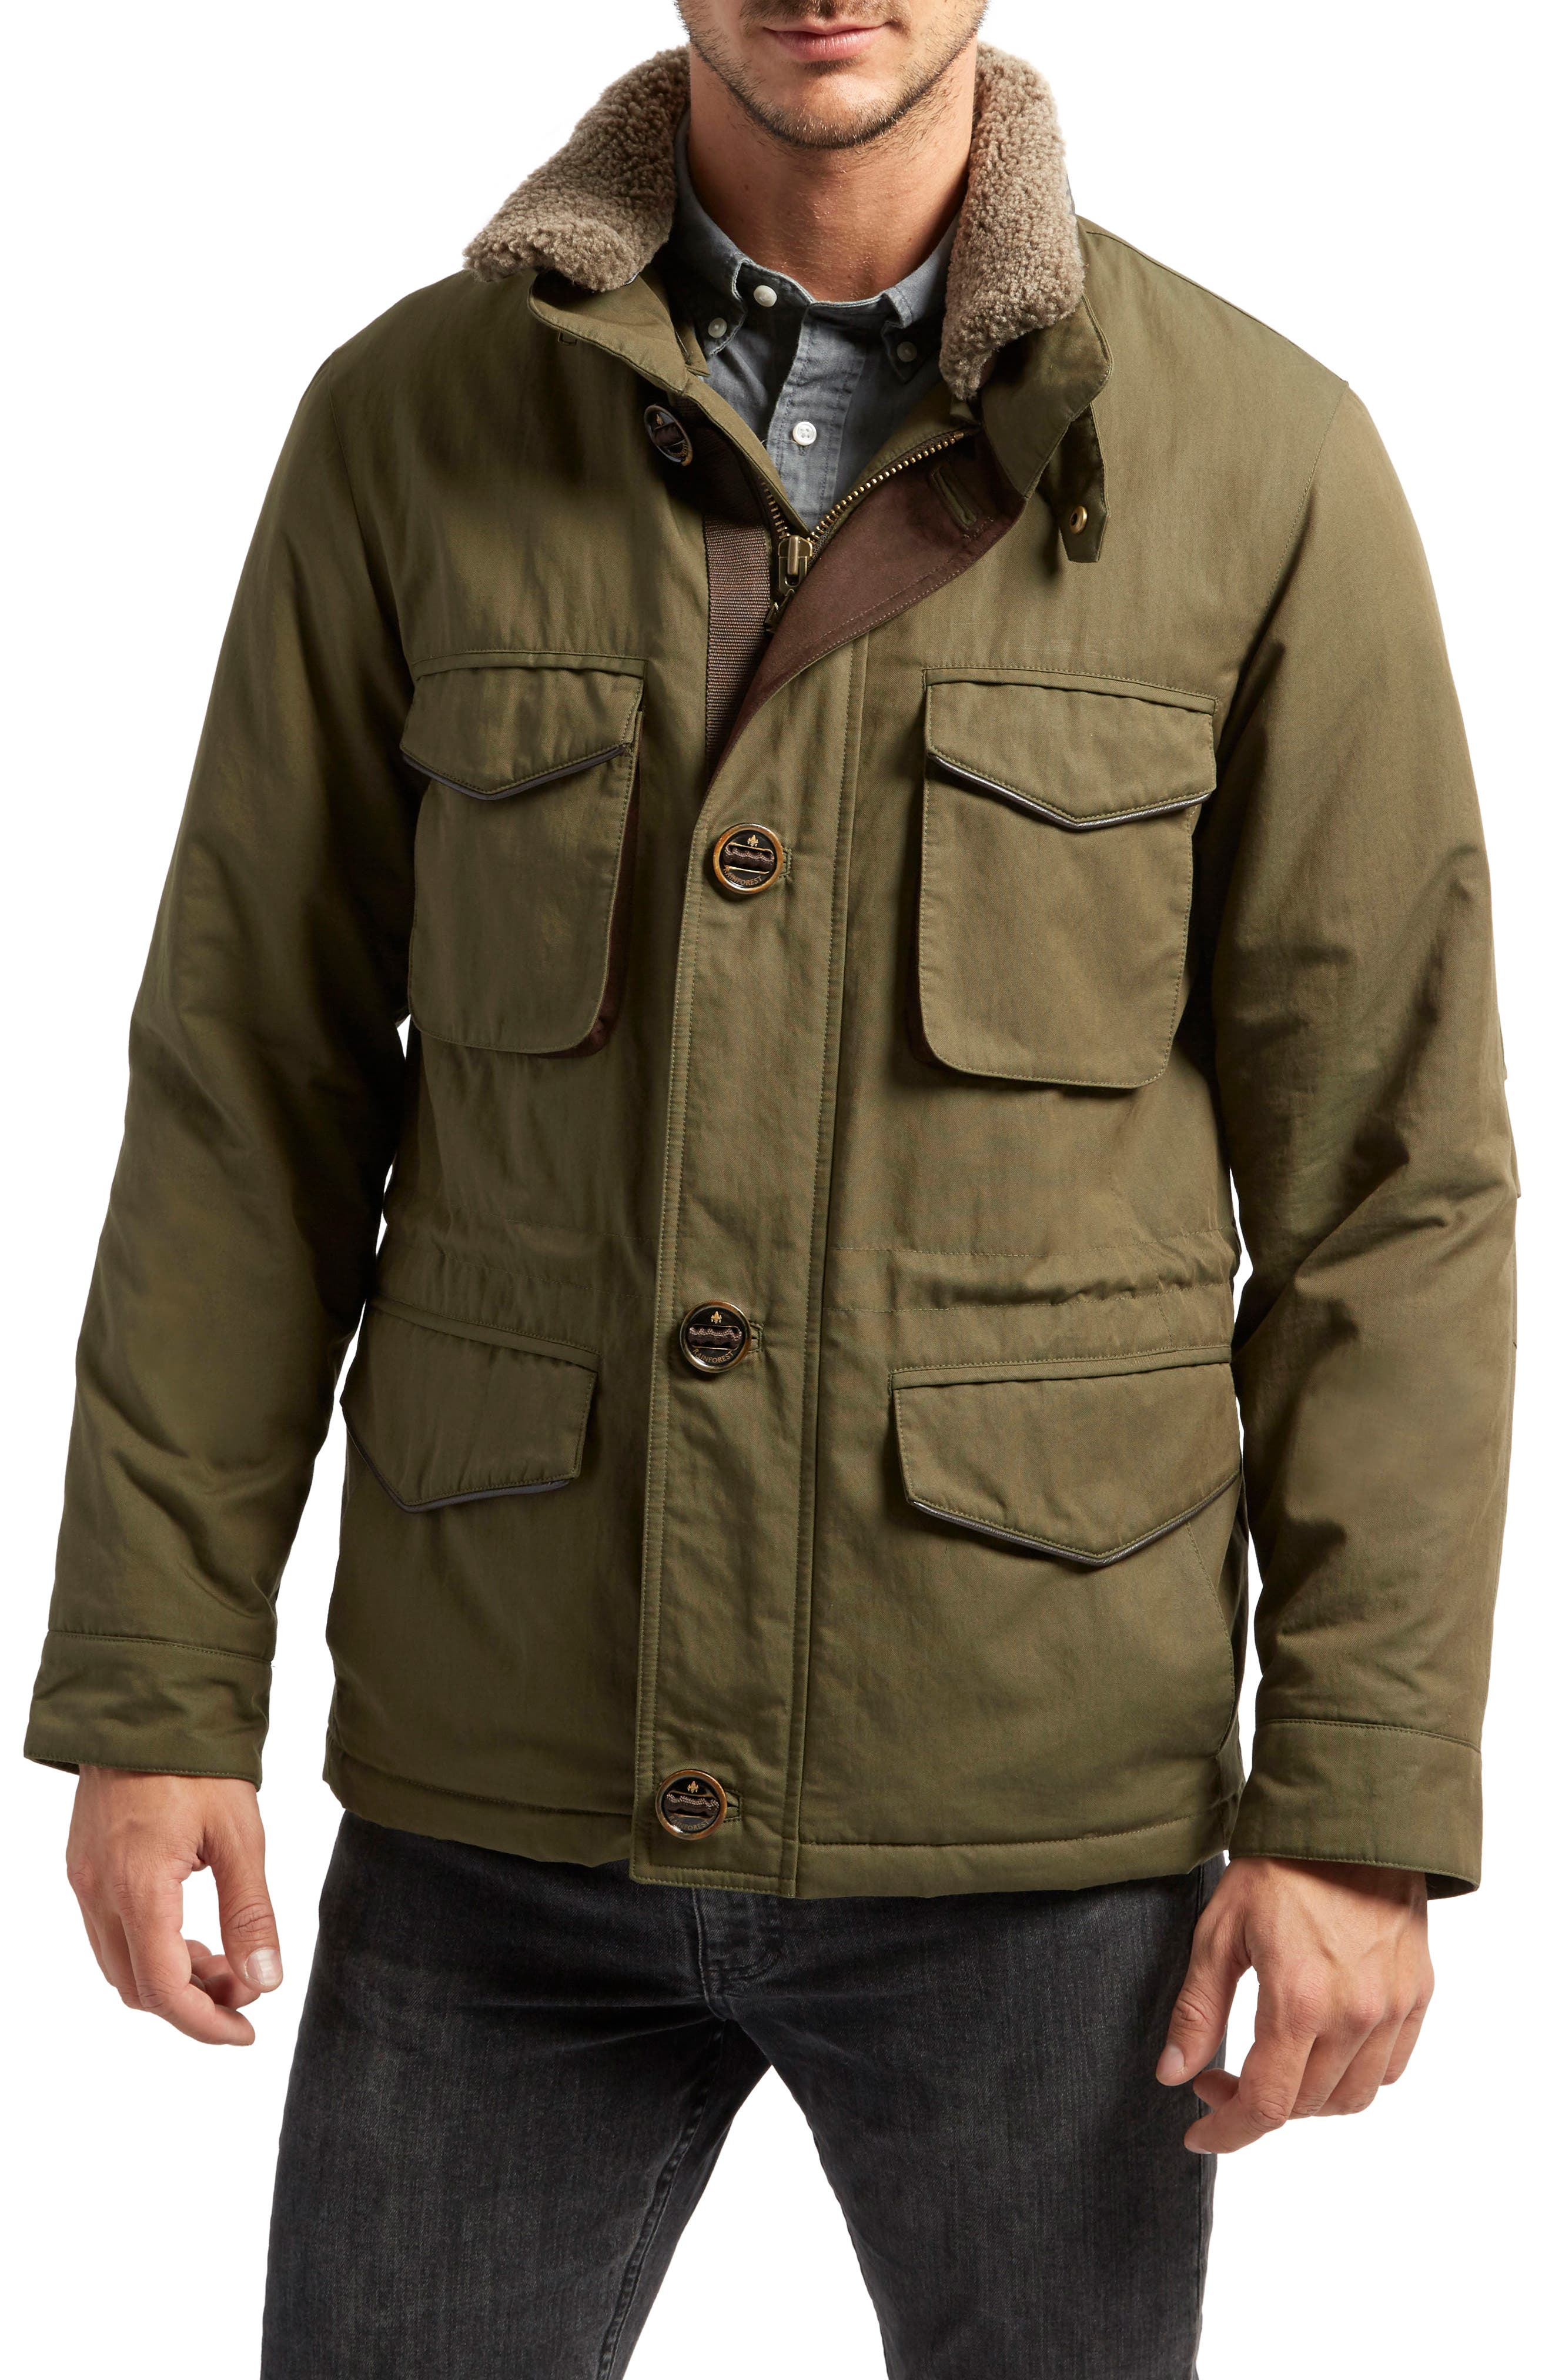 Flagler Heat System Field Jacket with Genuine Shearling Collar,                             Main thumbnail 1, color,                             319